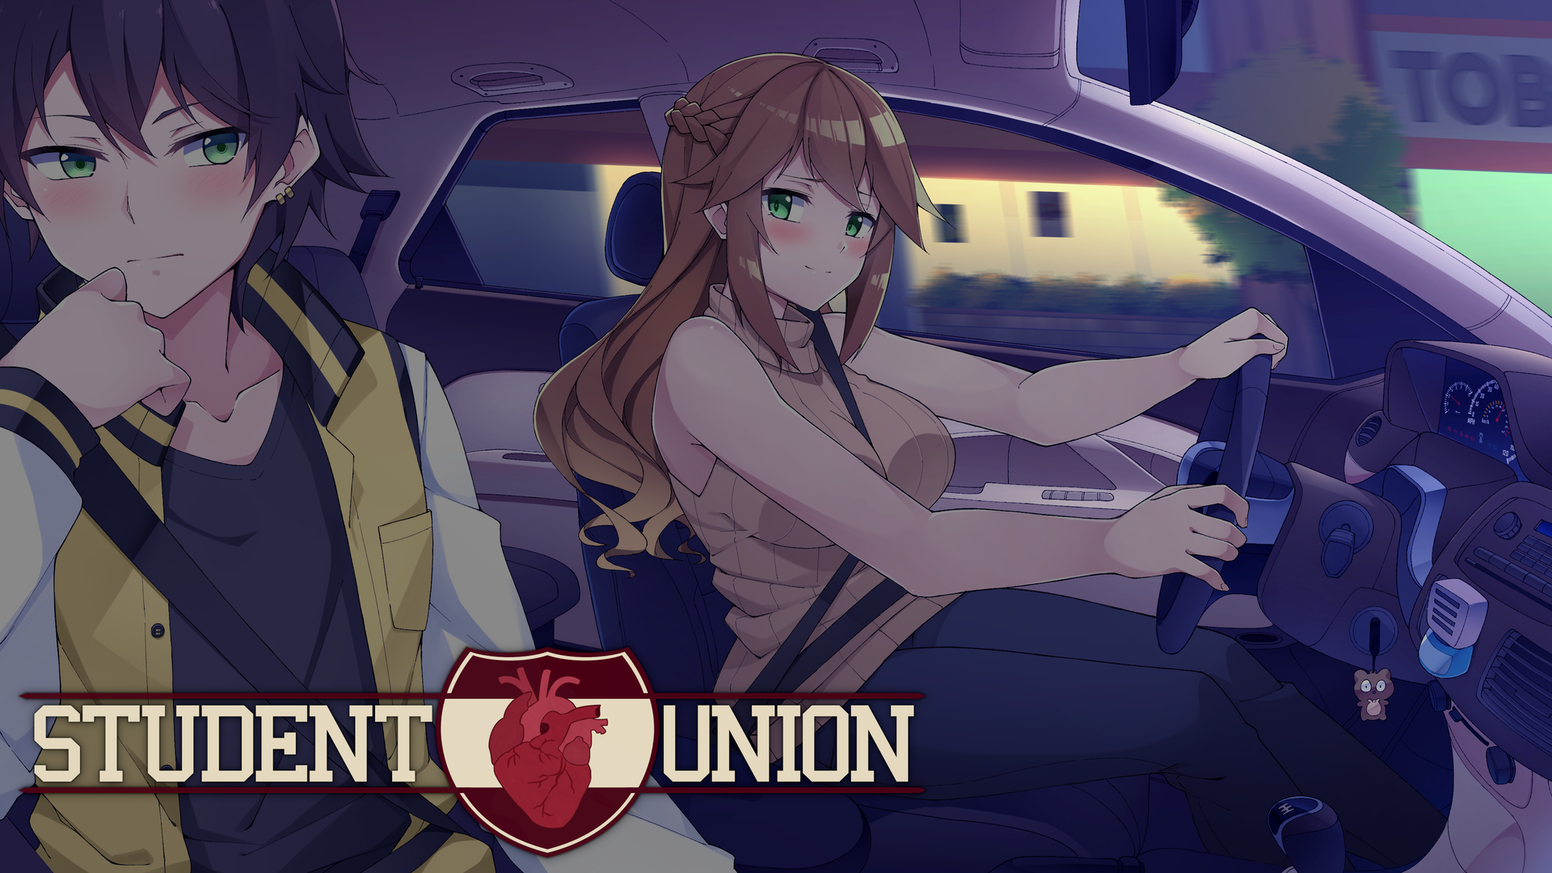 A full-length Visual Novel and dark drama in which subtle choices make deep impacts.